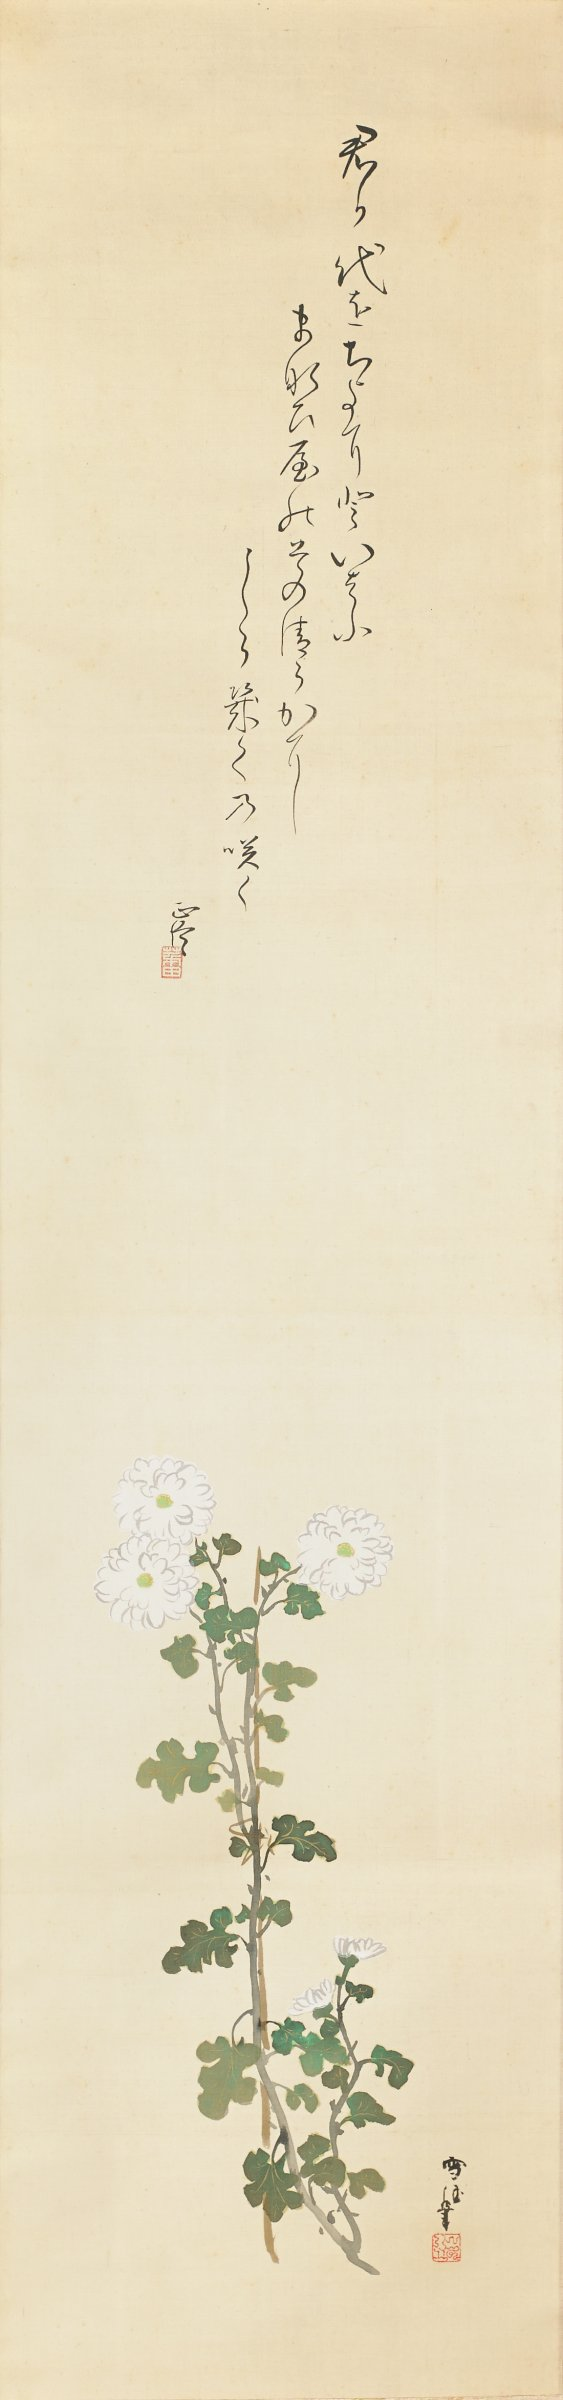 """Hanging scroll with inscription: """"My Lord's reign for a thousand ages of purity. The school's chrysanthemums bloom."""" (Written by Masaomi, dates unknown.)"""